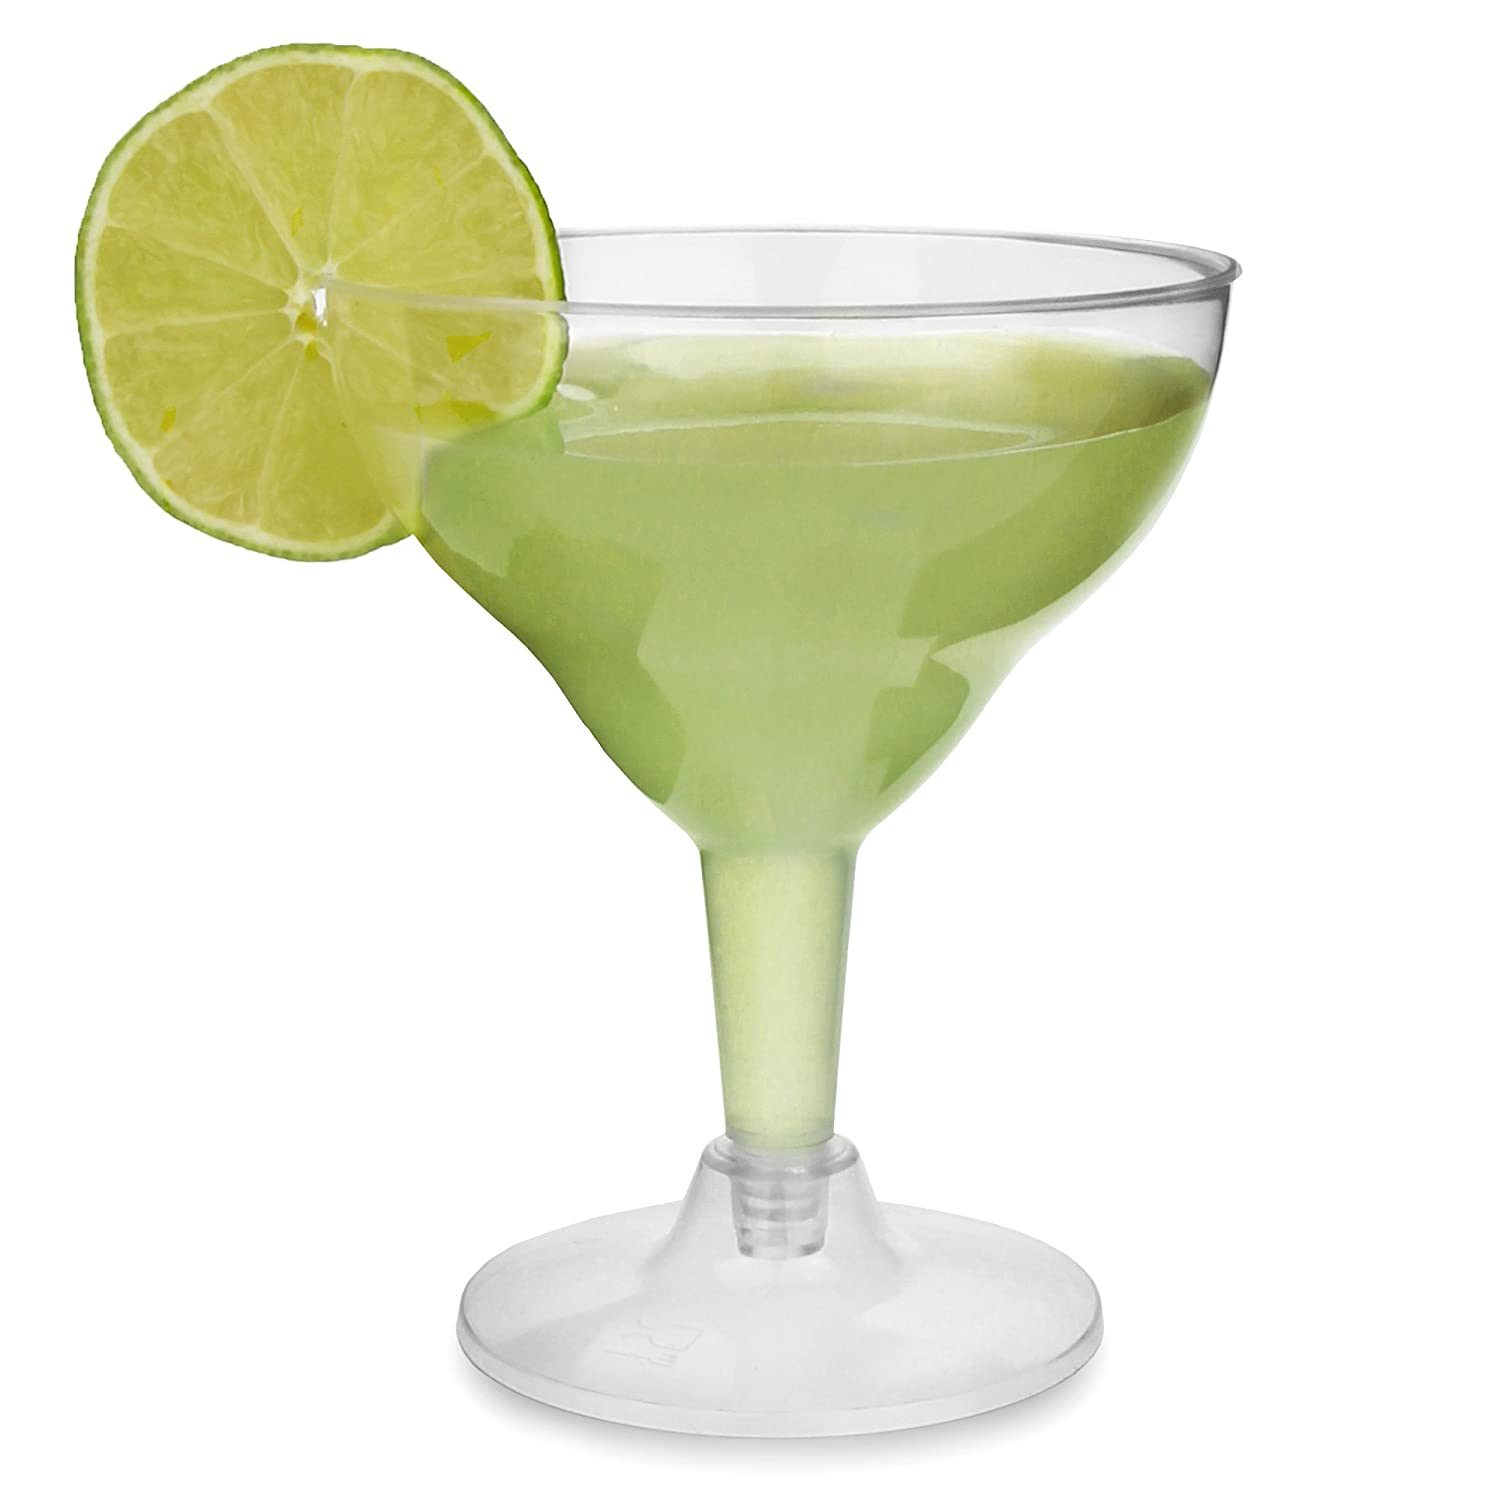 bar@drinkstuff Disposable Margarita Glasses 5.5oz/155ml - Set of 12 - Clear Plastic 2-Piece Cocktail Glasses H&PC-68553